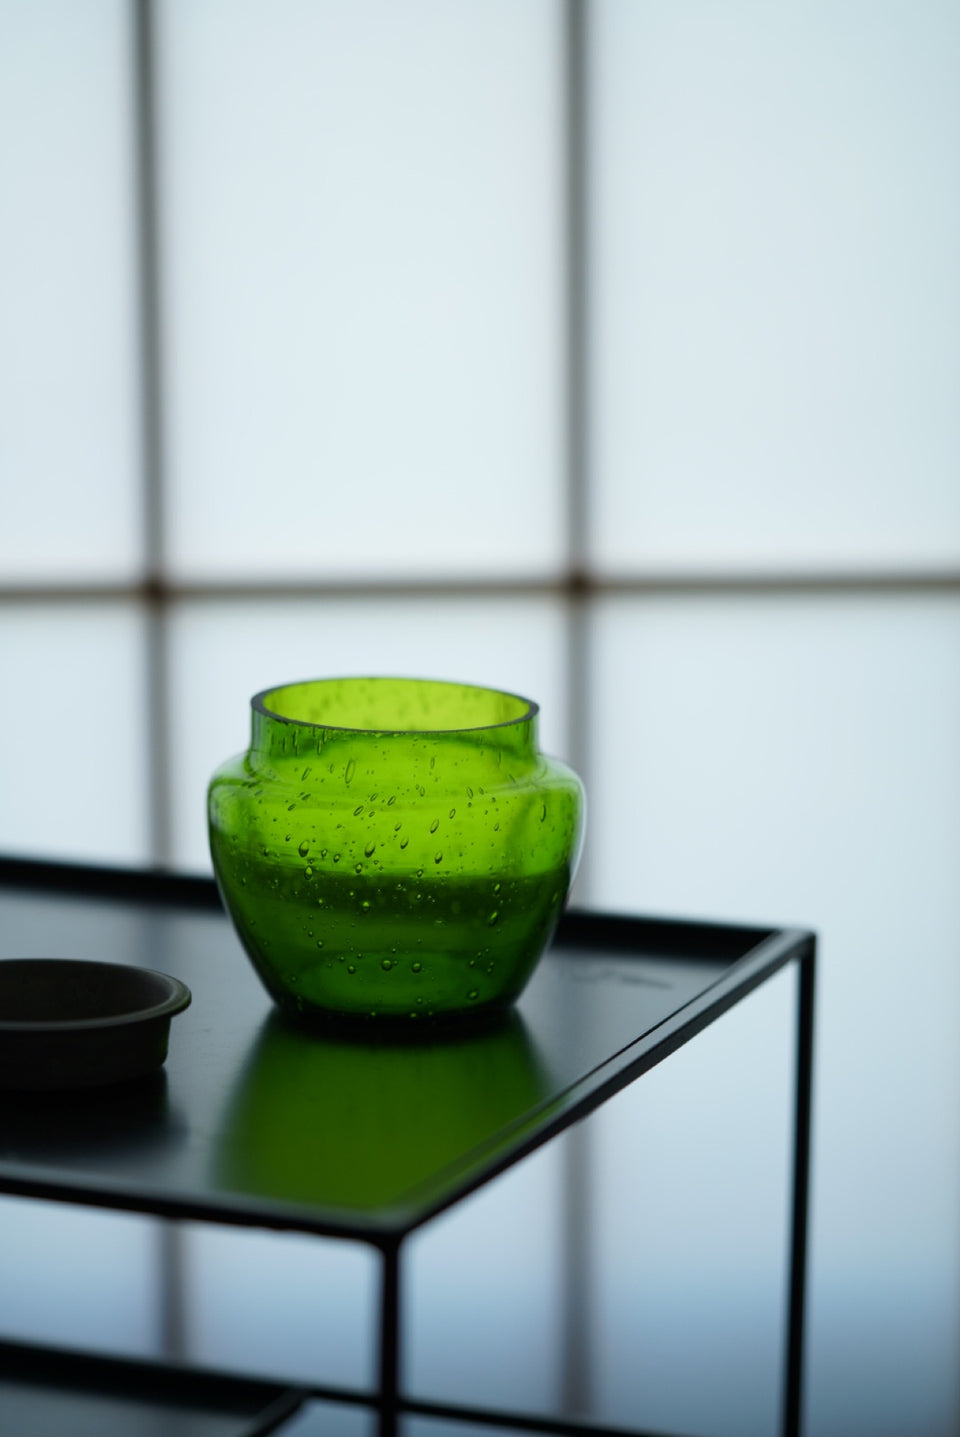 Green Apple Glass Jian Shui